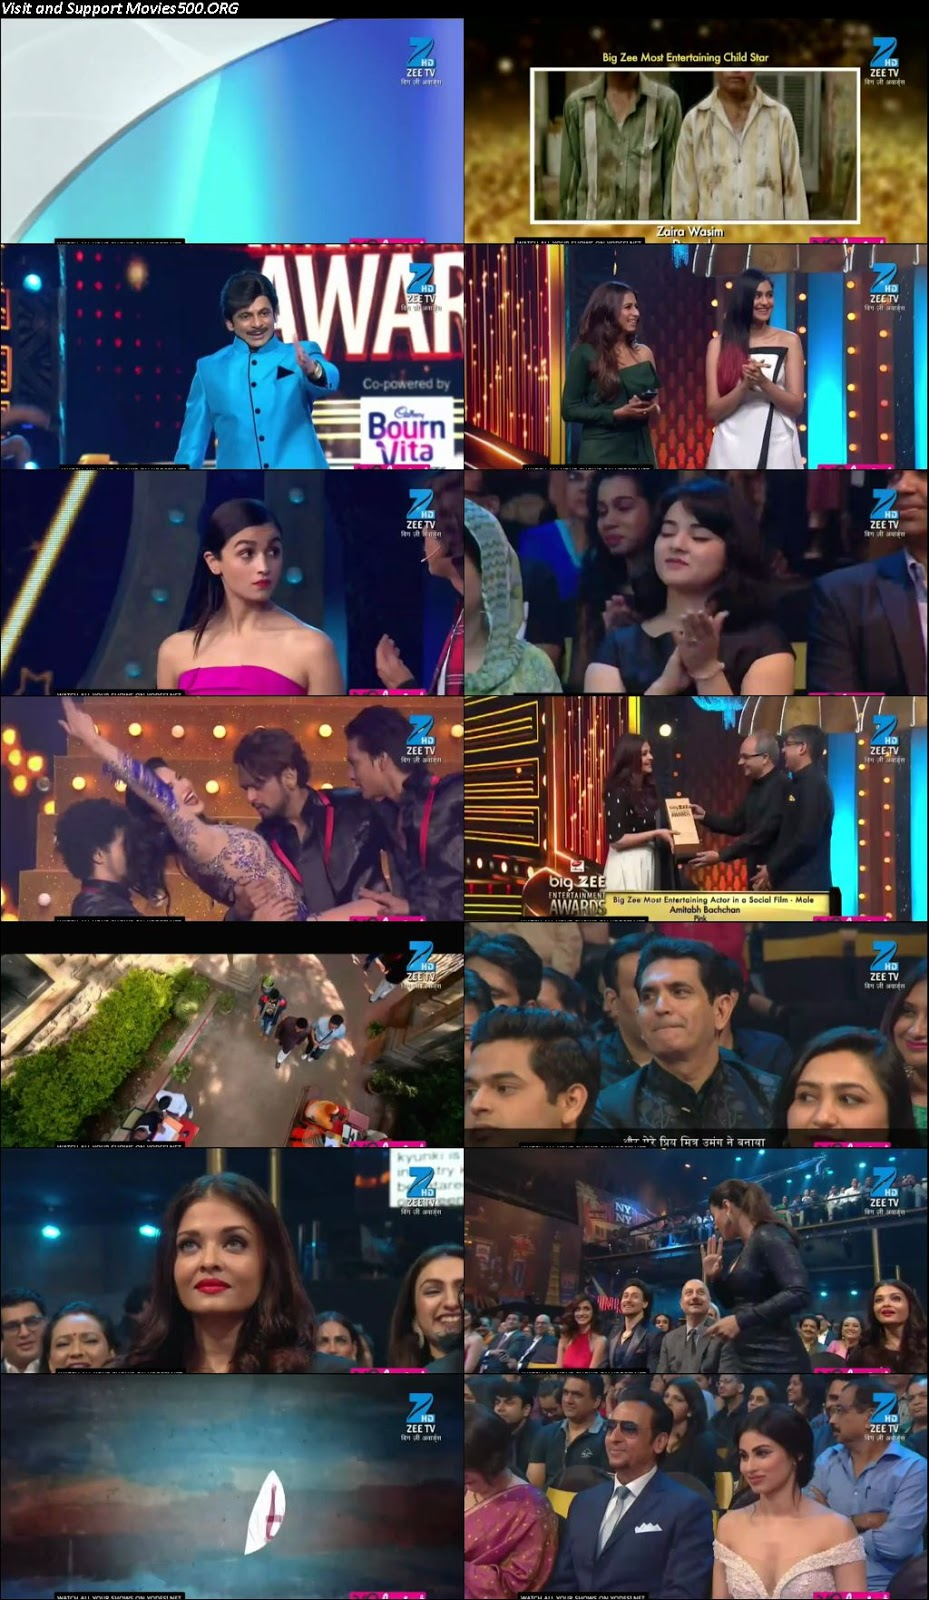 Big Zee Entertainment Awards 2017 Main Event Download HD 720p at movies.org